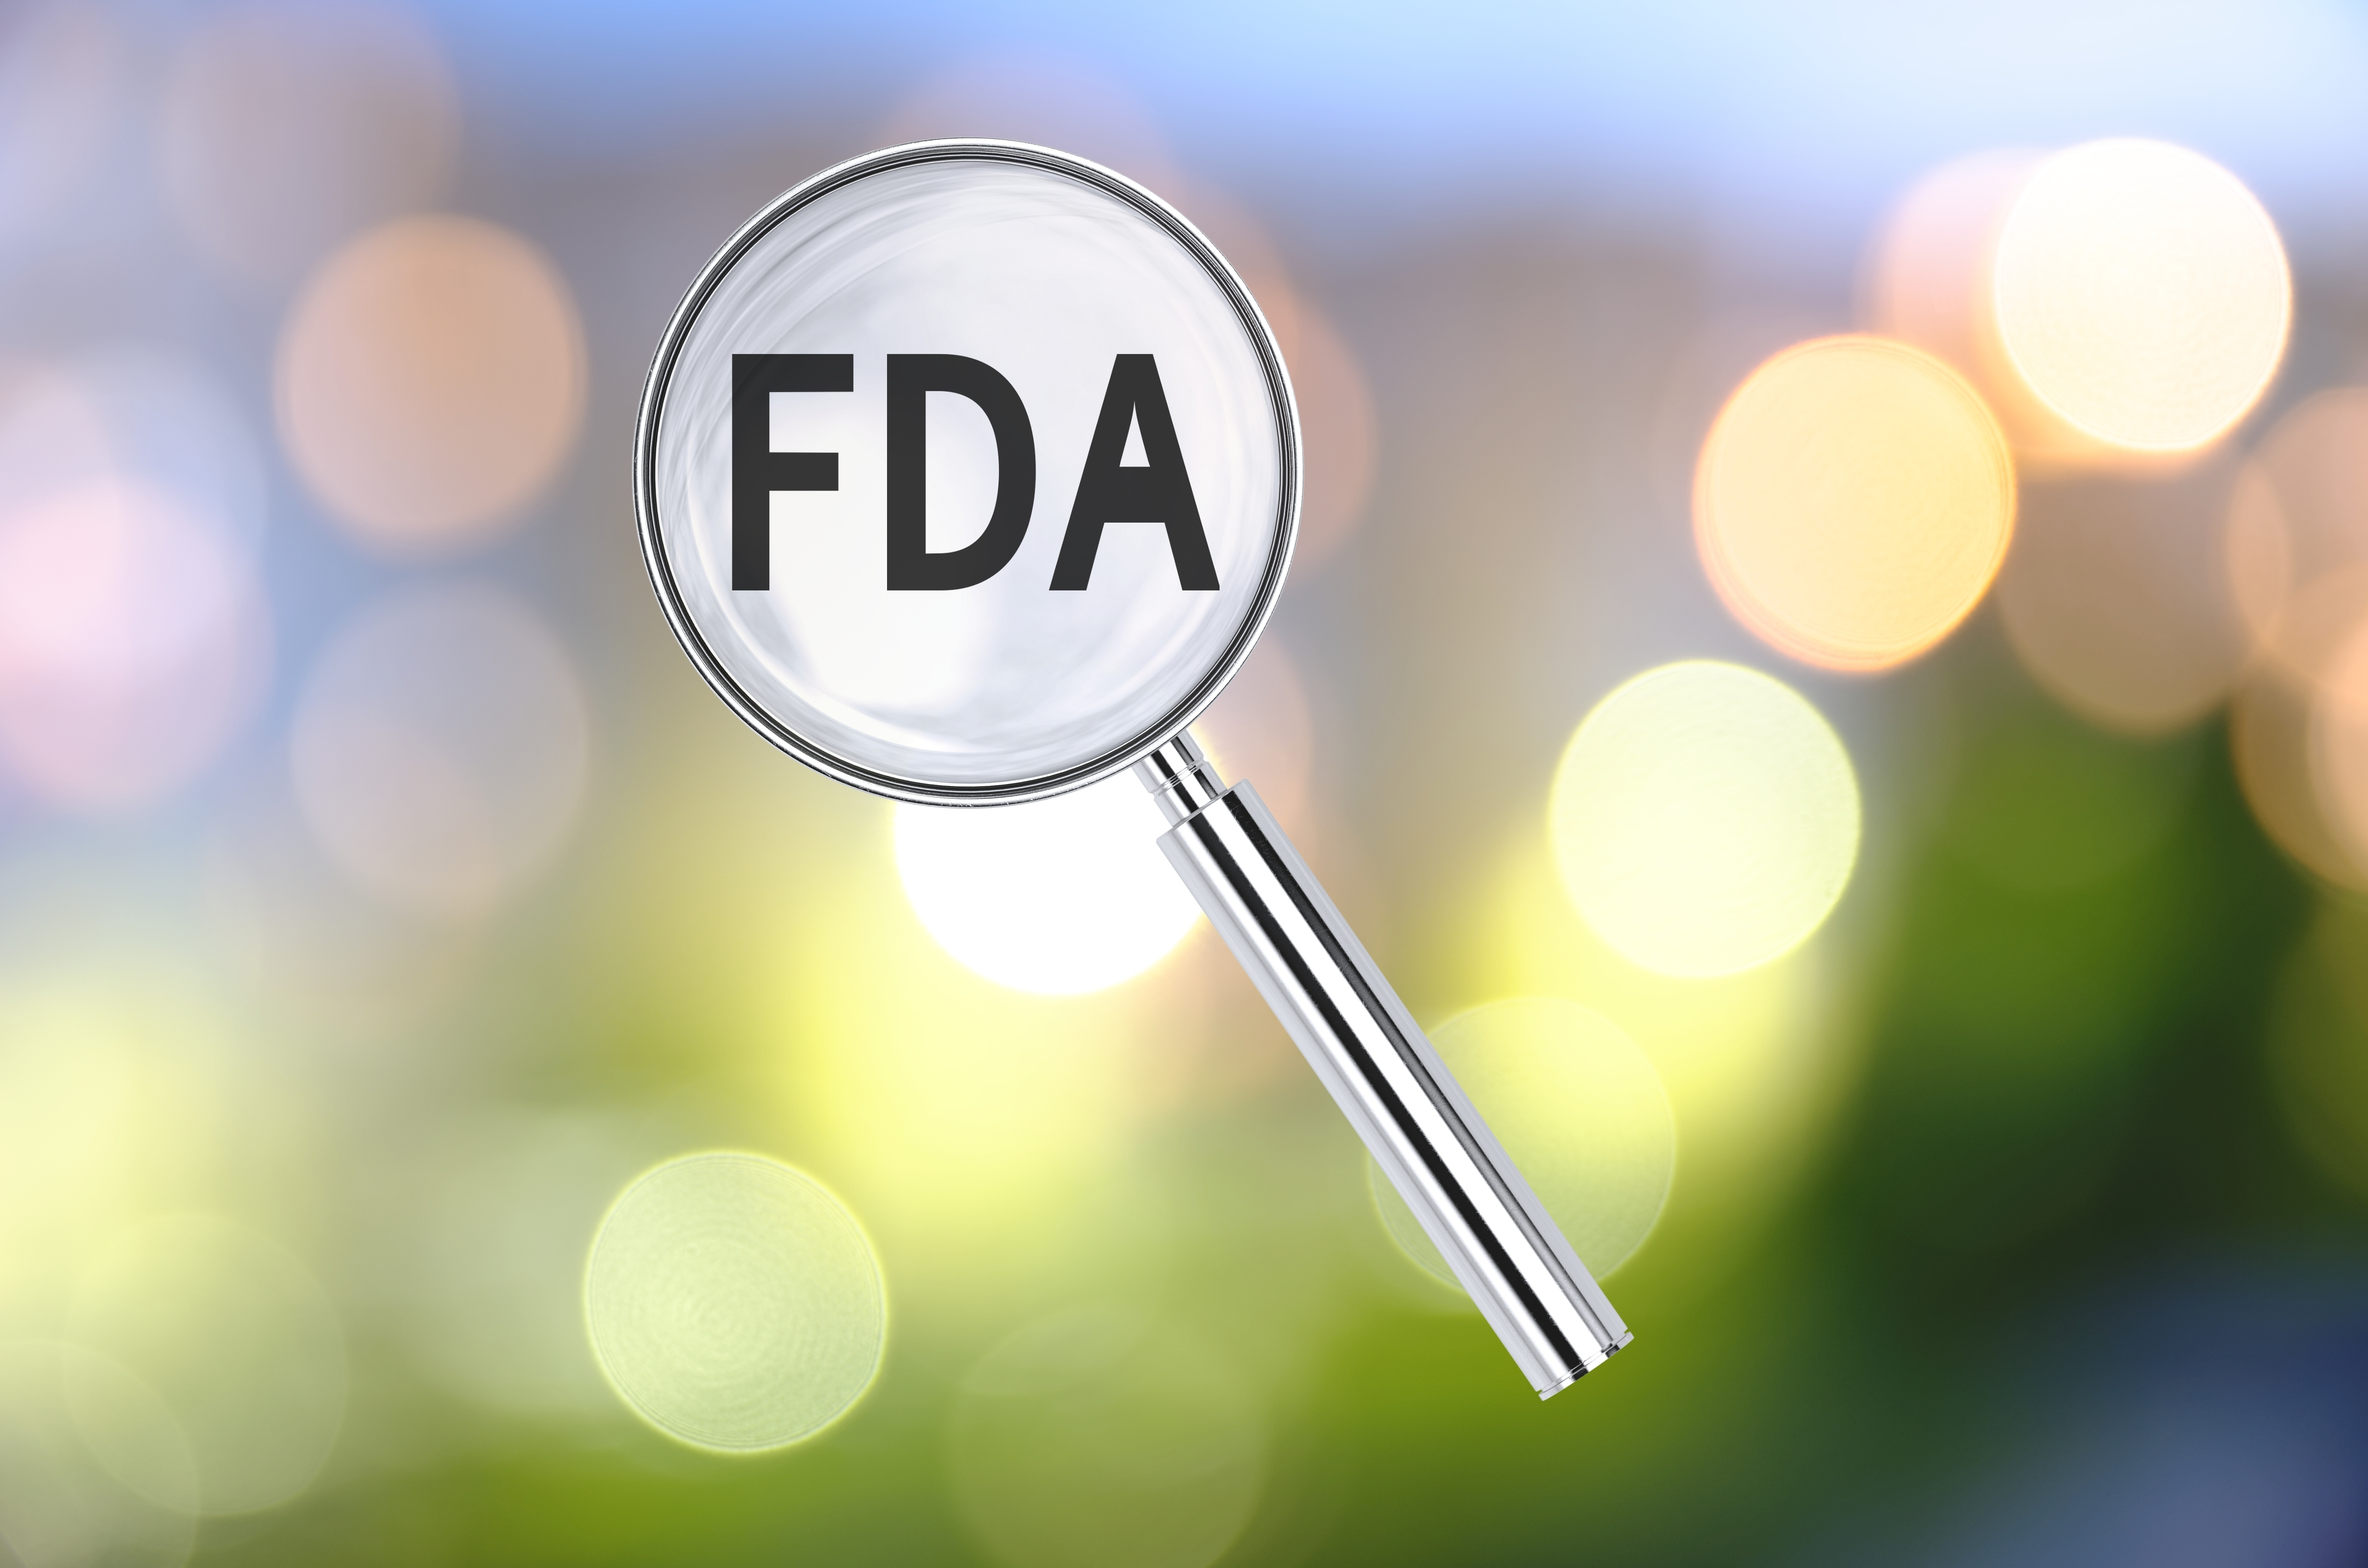 PAH therapy and FDA